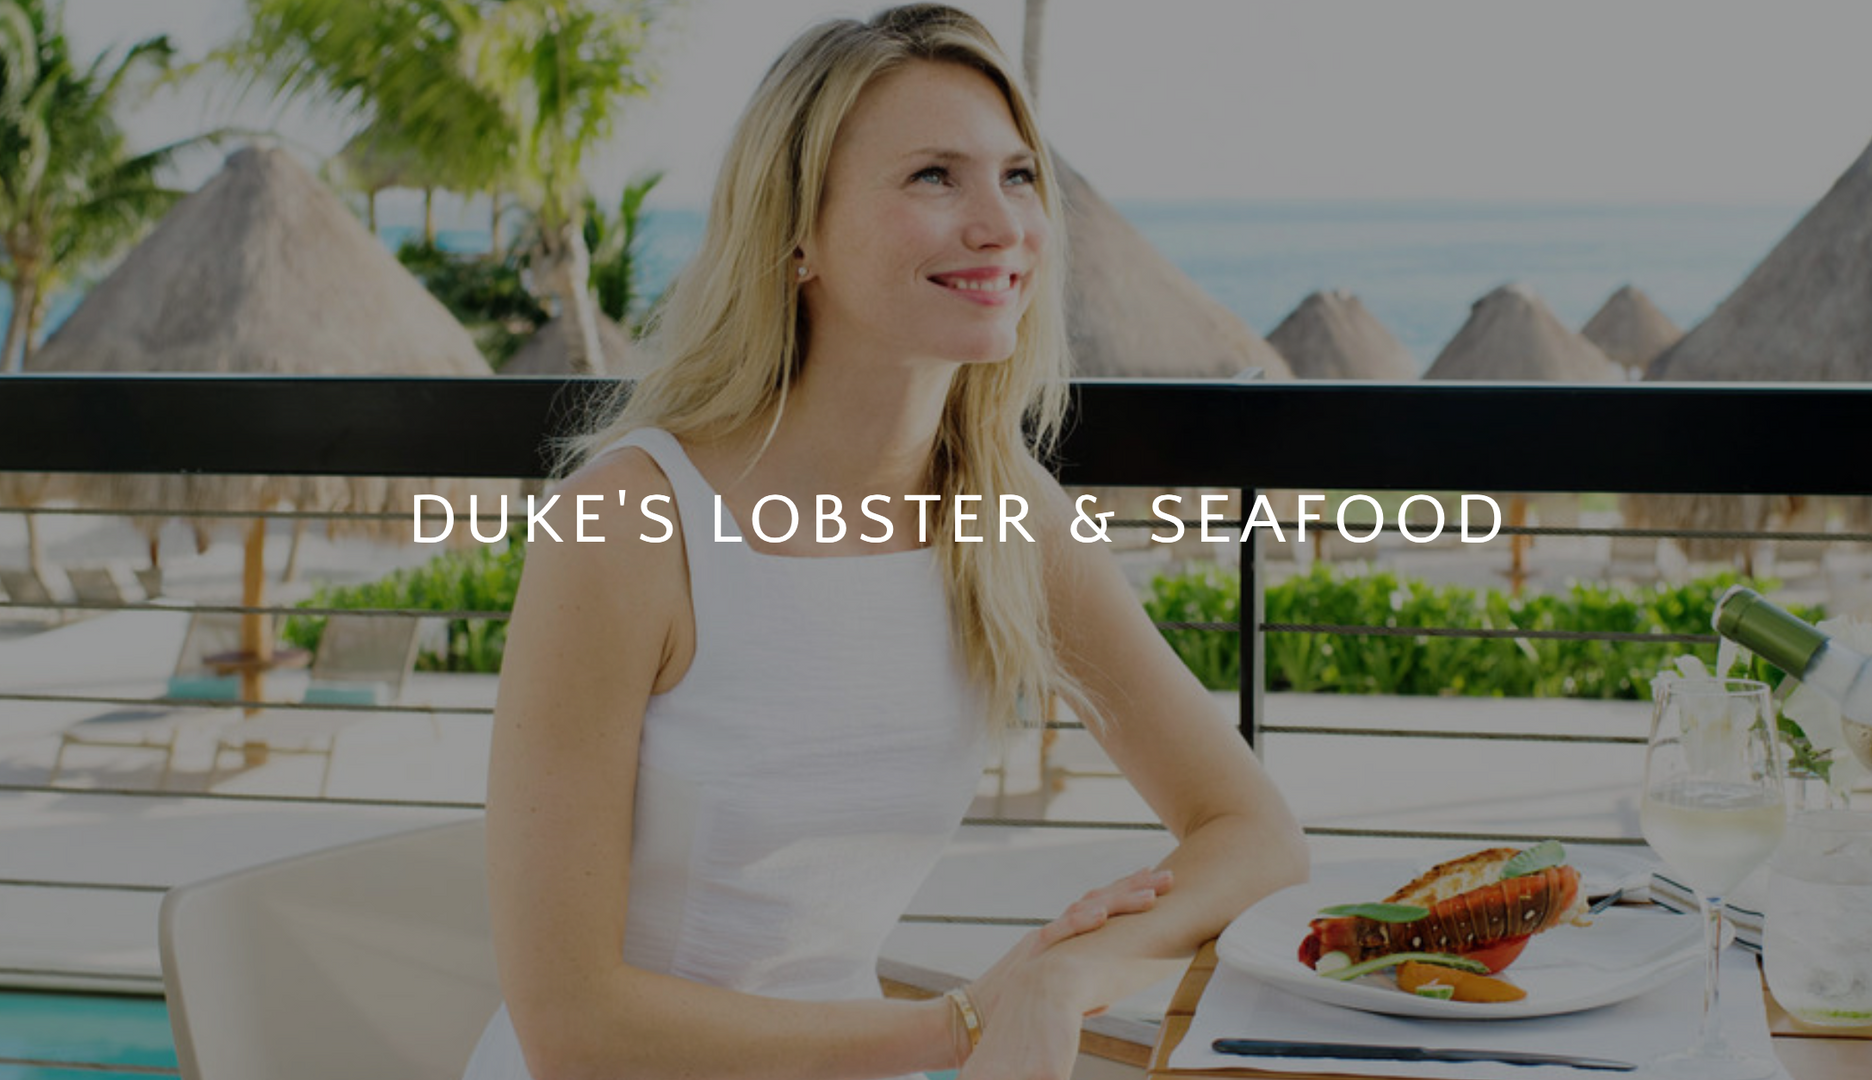 DUKE'S LOBSTER & SEAFOOD